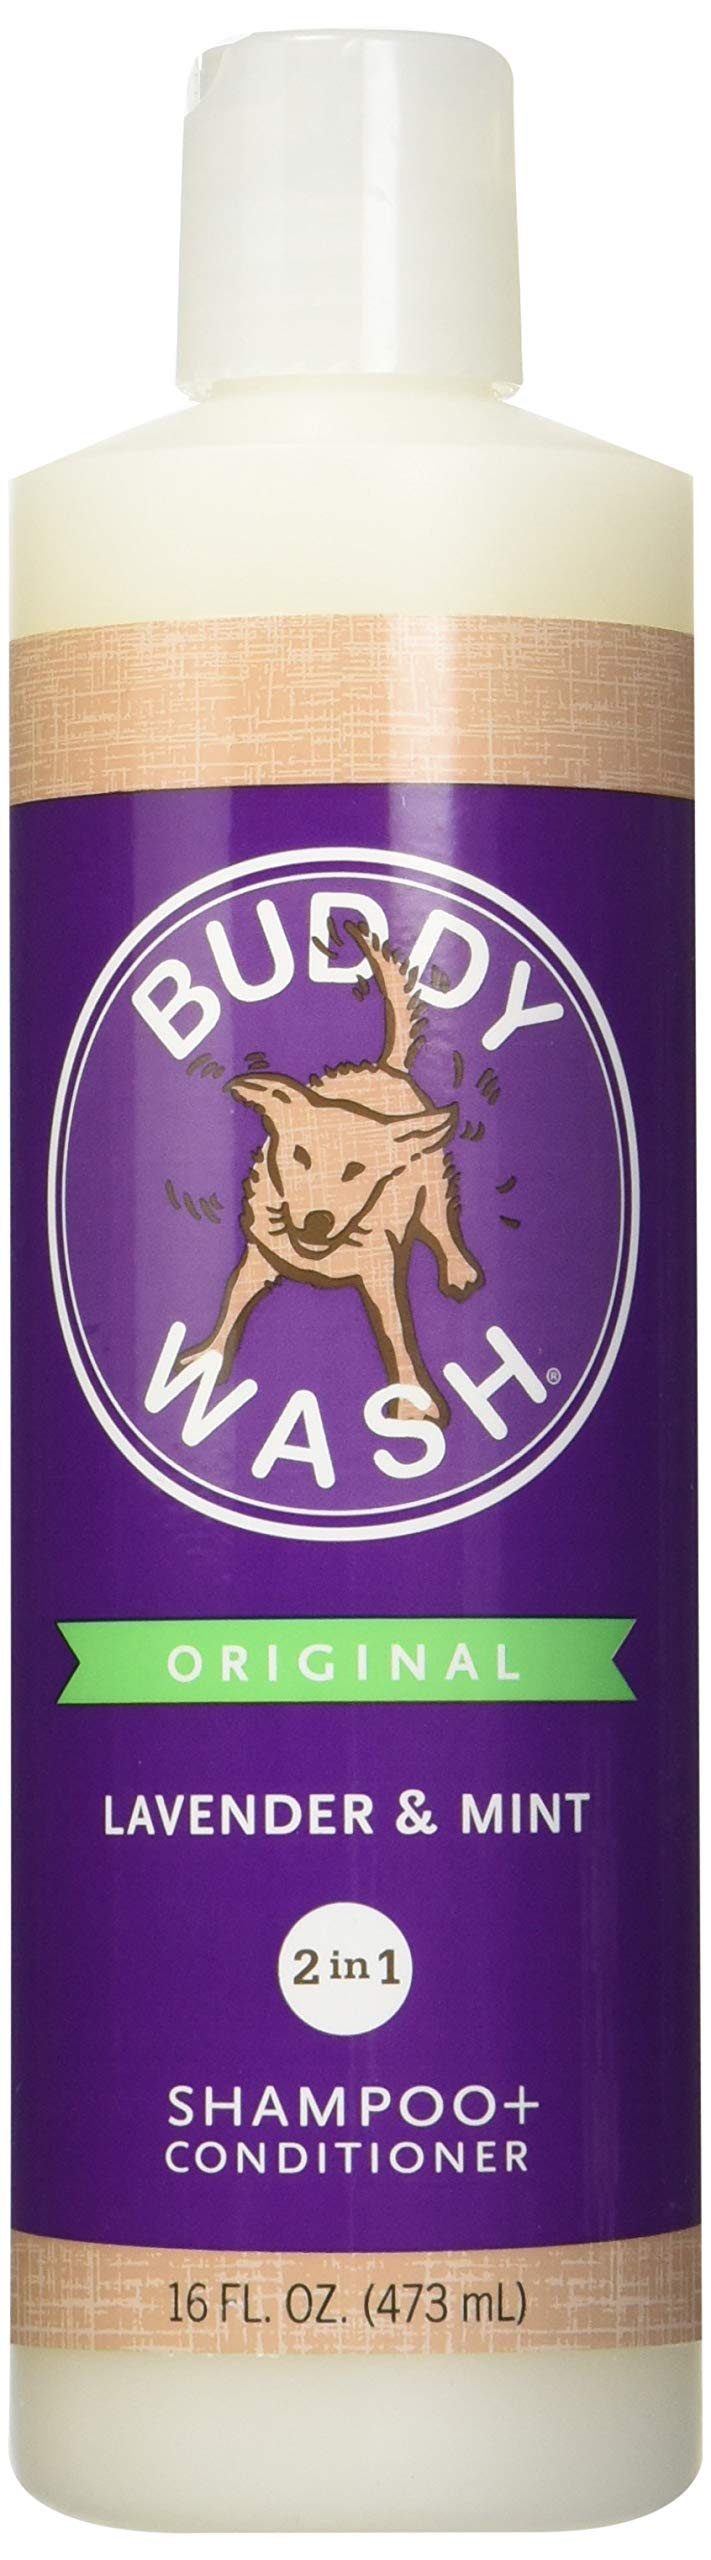 Cloudstar Buddy Wash Lavender & Mint Shampoo (Pack of 3) by Cloud Star